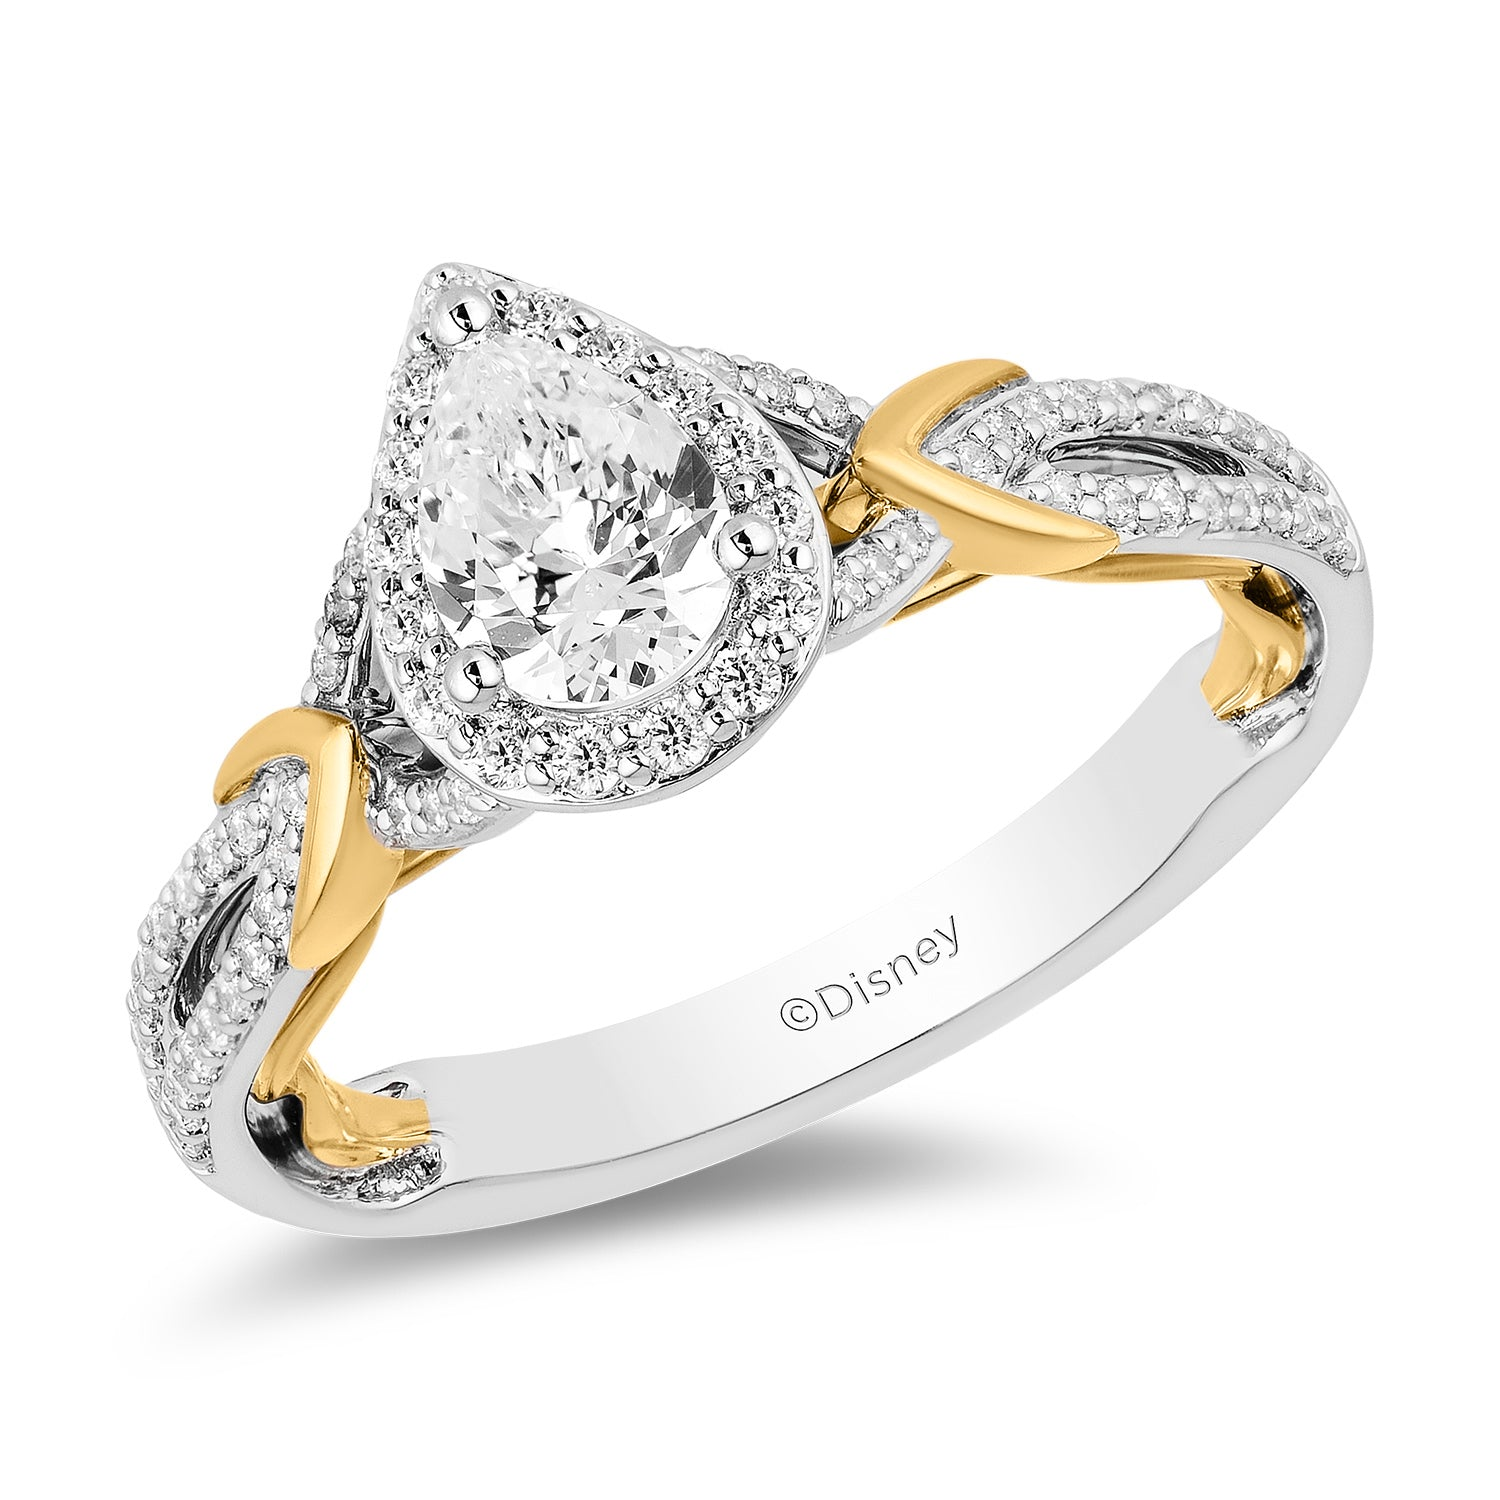 enchanted_disney-snow-white_engagement_ring_3/4CTTW_1